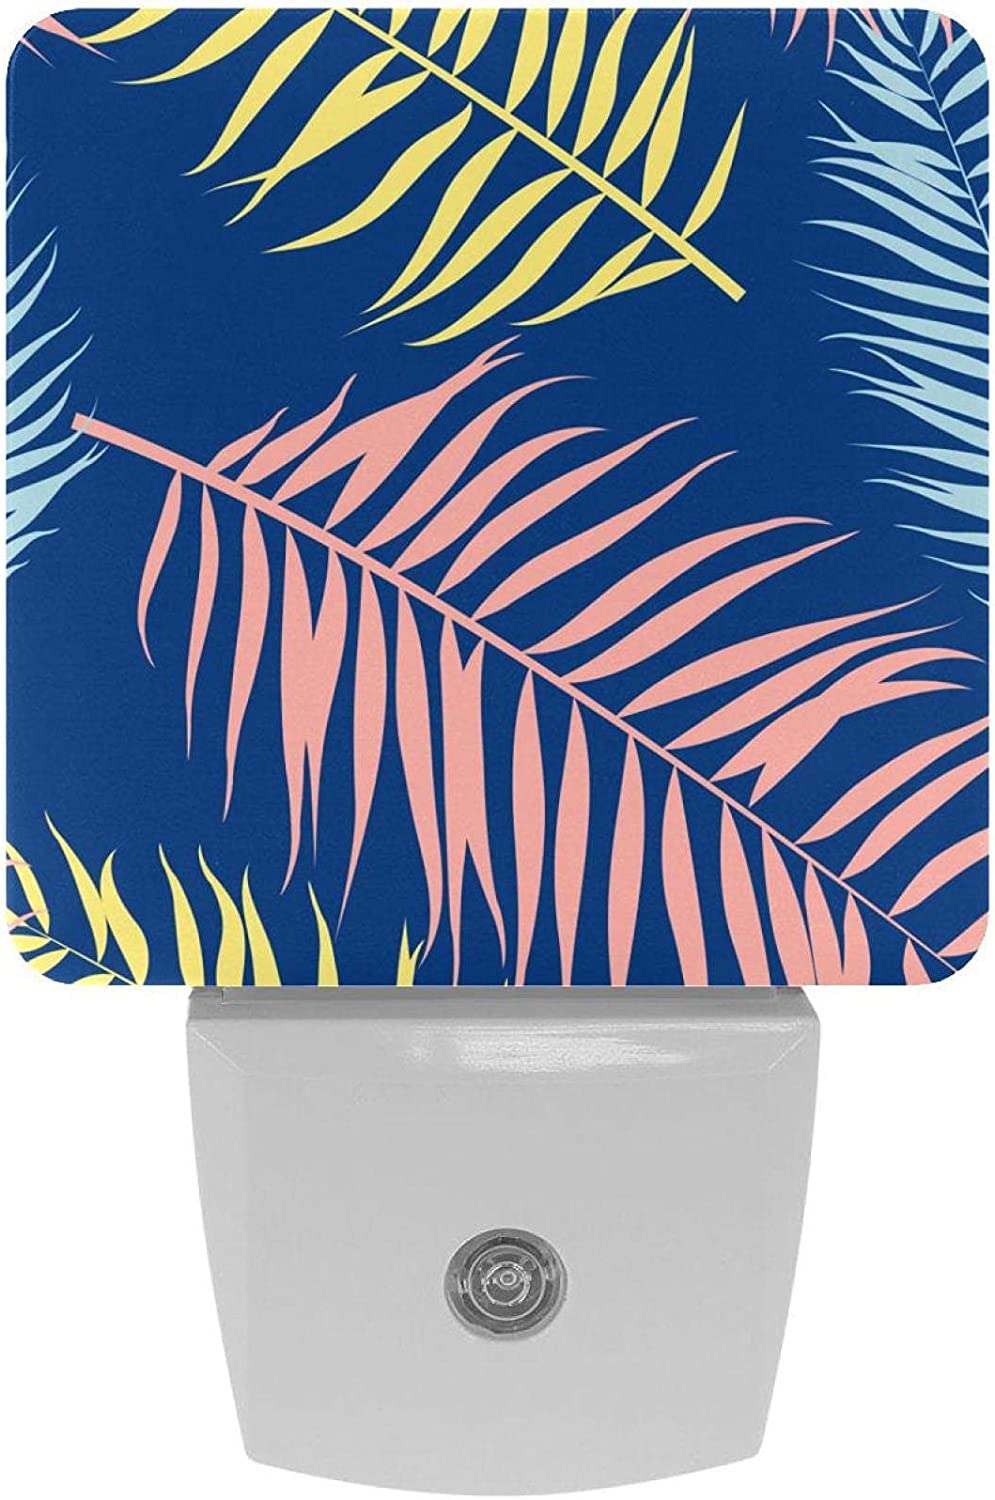 It is very popular 2 New item Pack Plug-in Nightlight LED Night Tropical Leaves Light Palm w